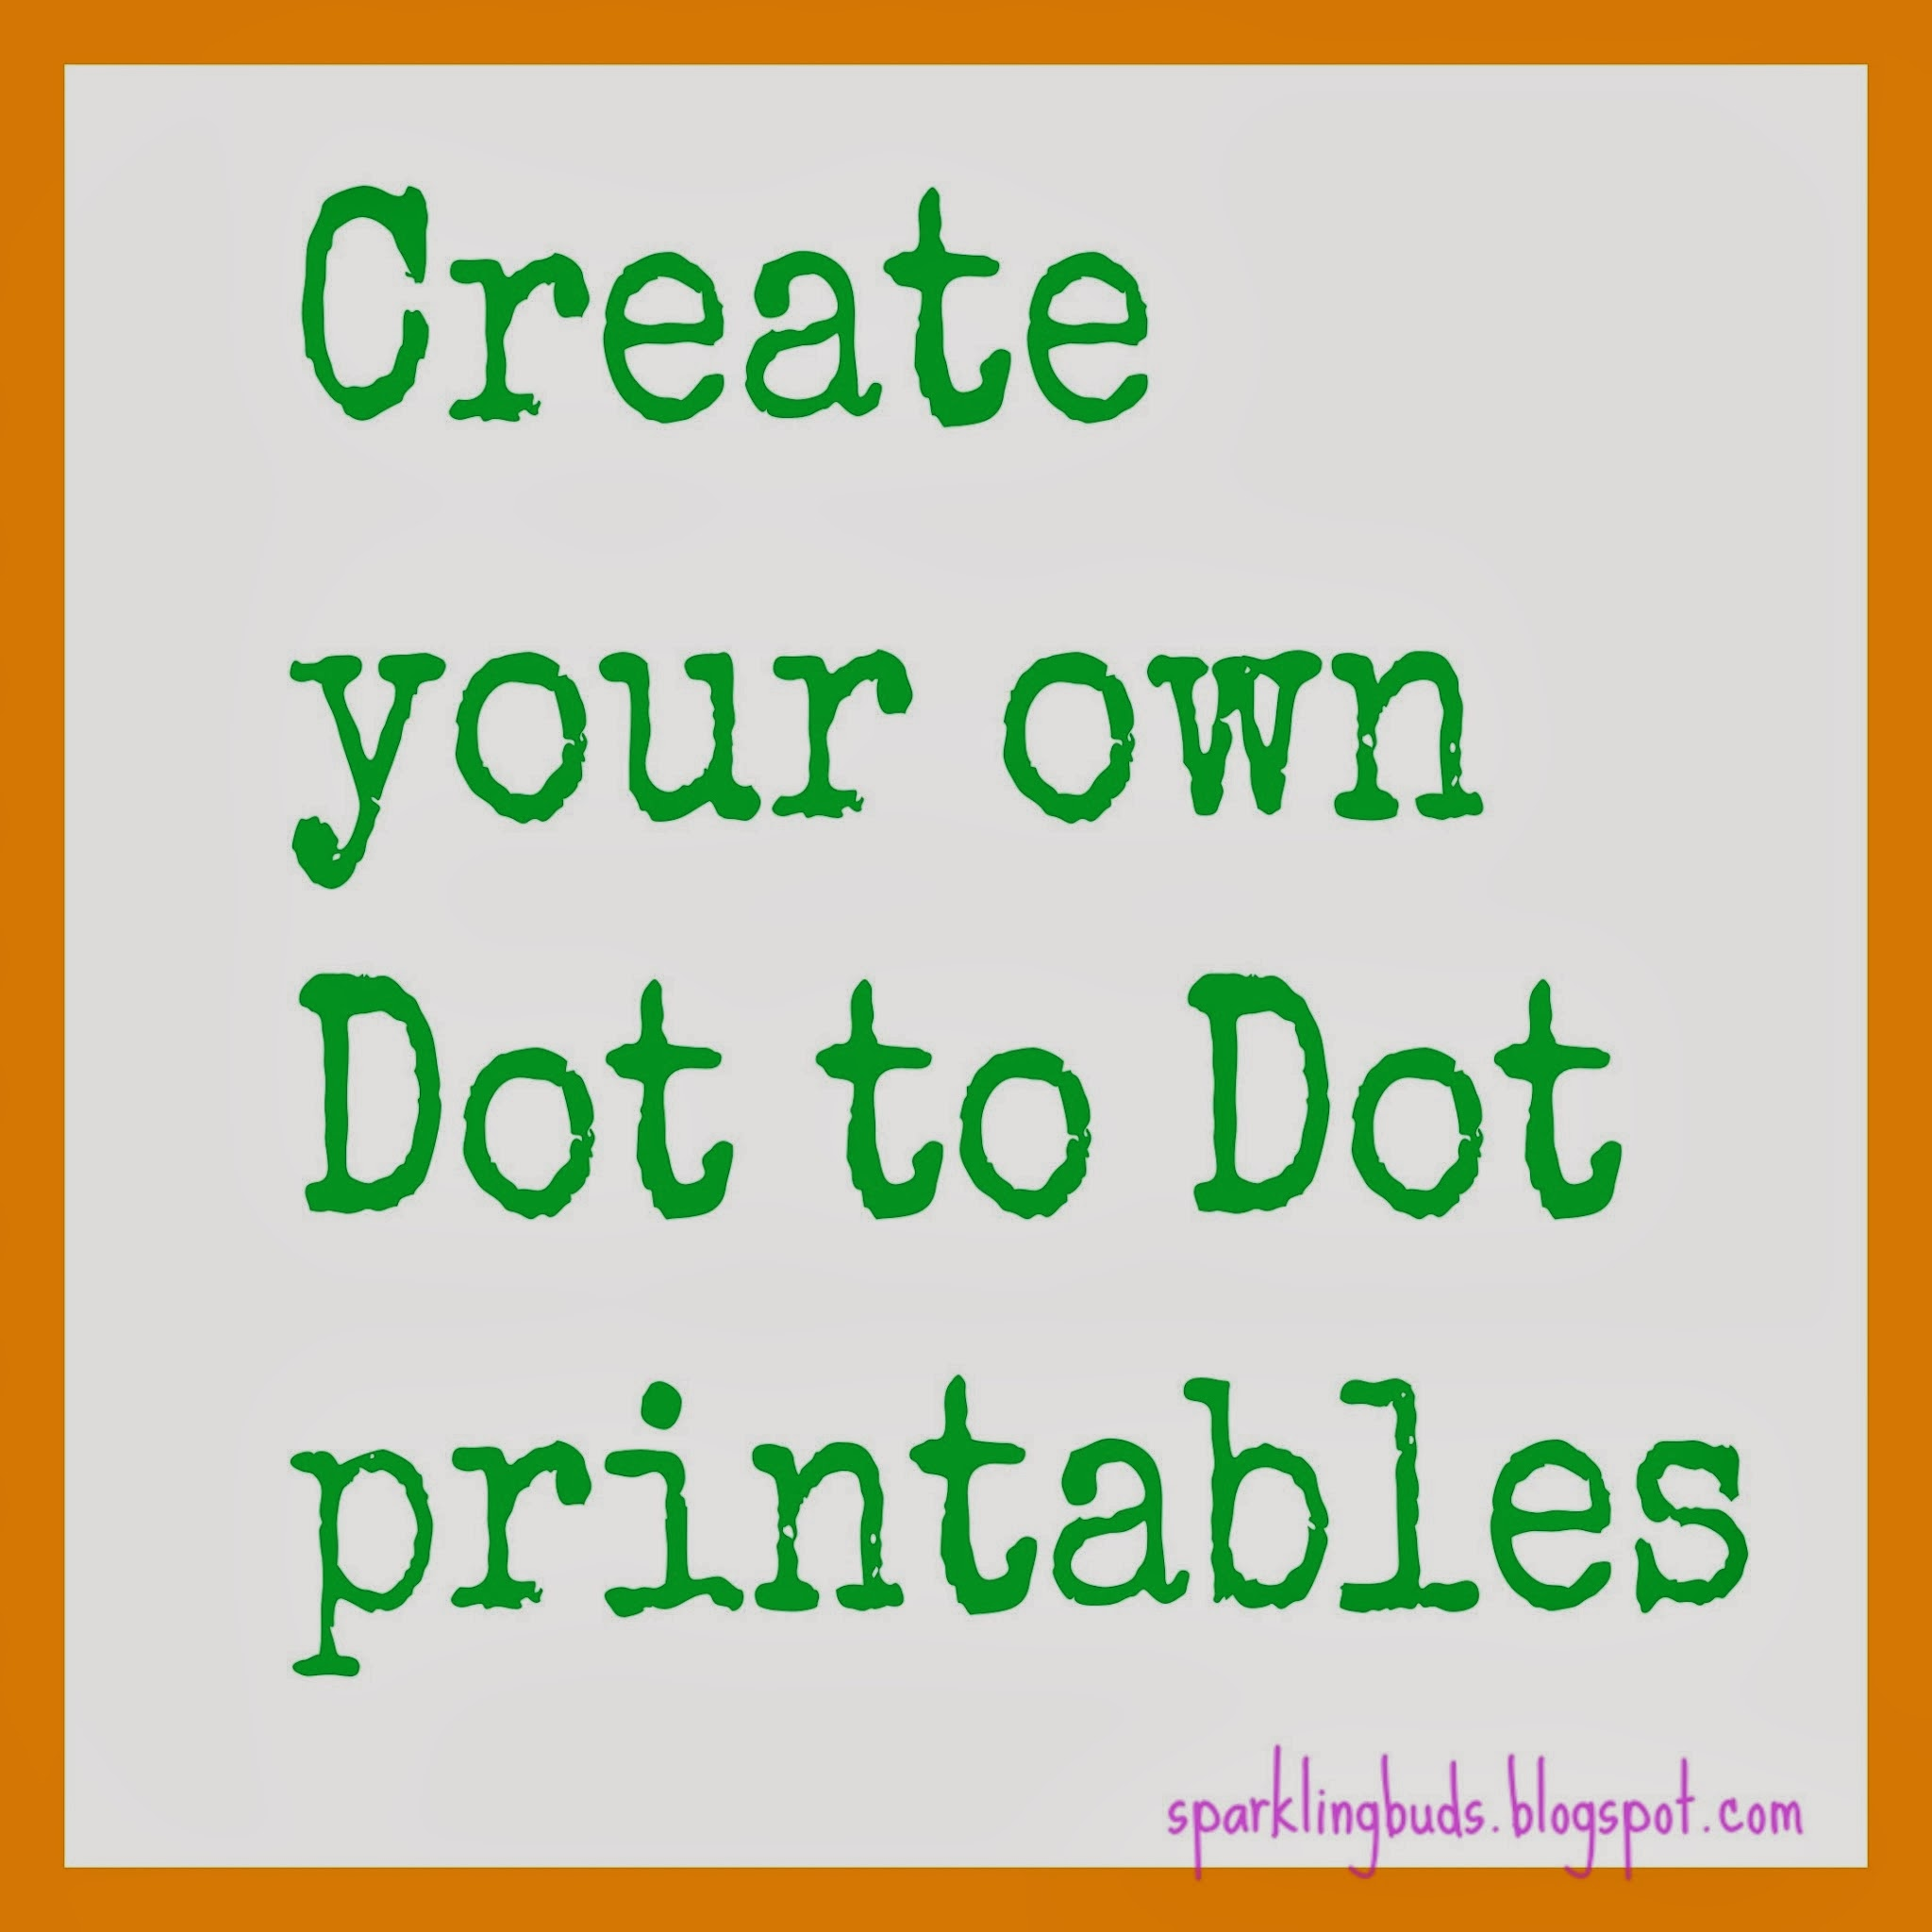 Make your own dot to dot printable using gimp sparklingbuds I want to design my own home online